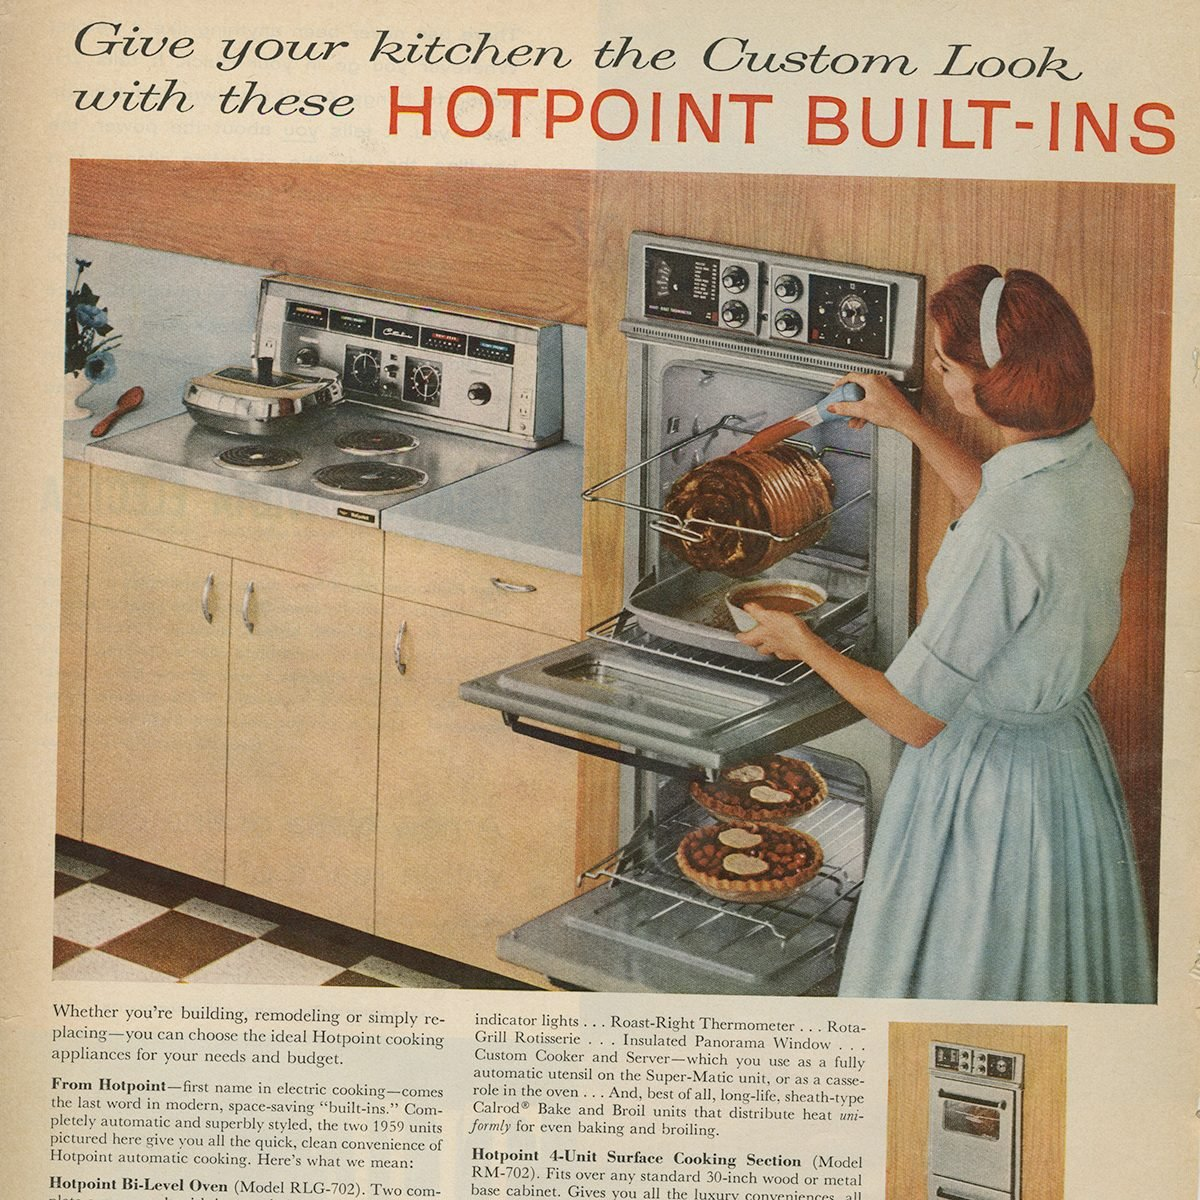 Hotpoint Built-in Ovens ad